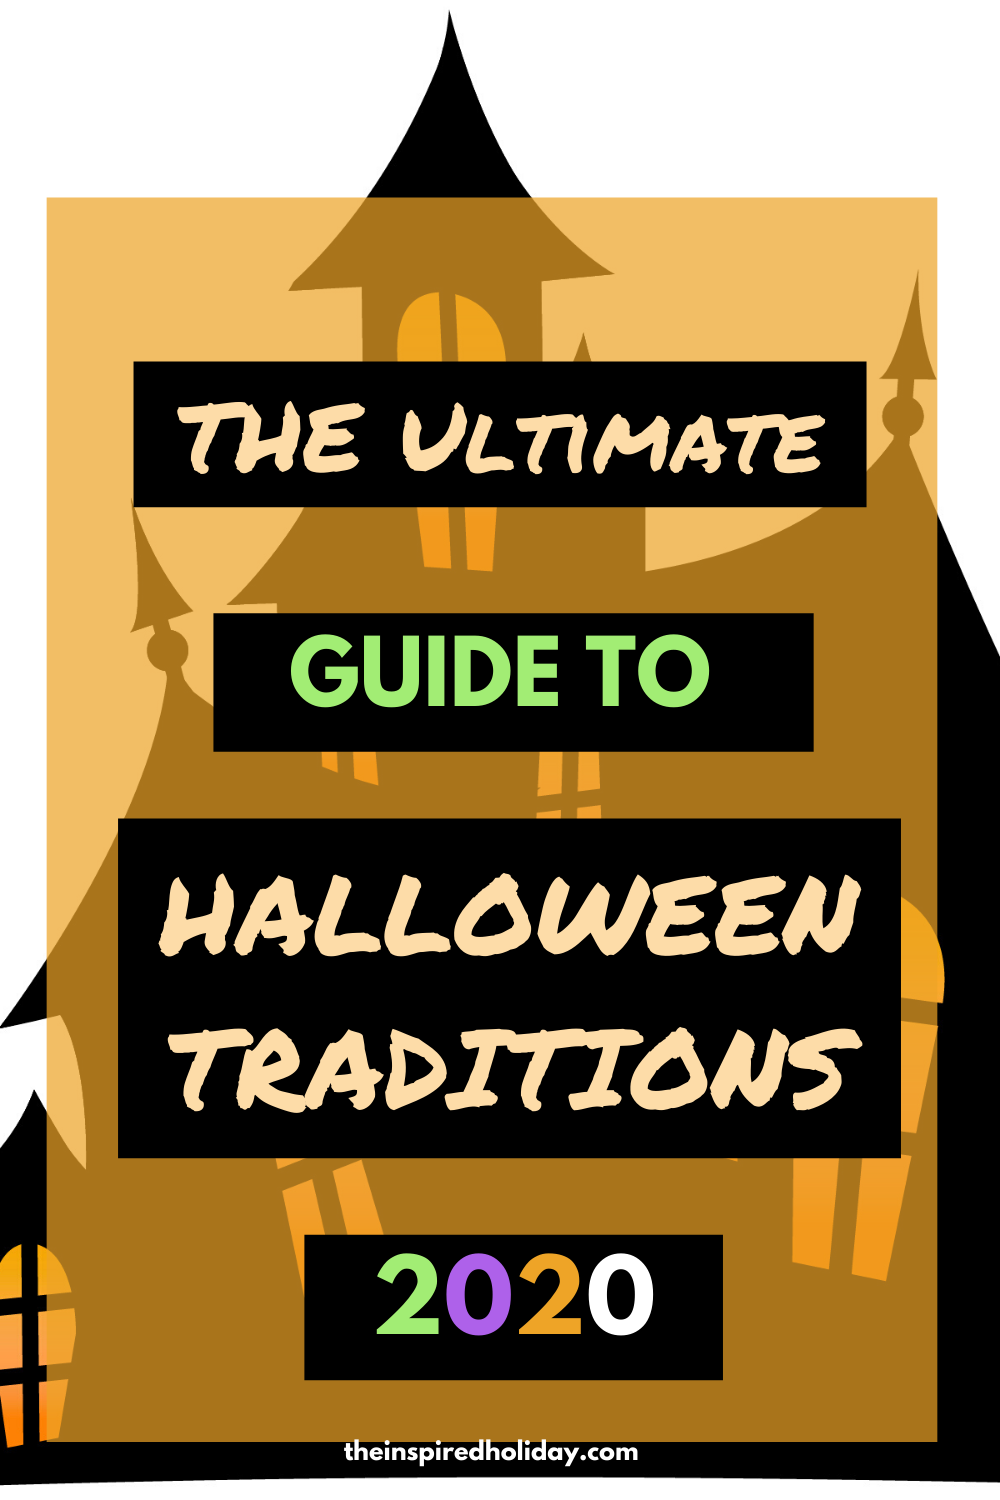 The Ultimate Guide To Halloween Traditions For 2020 in